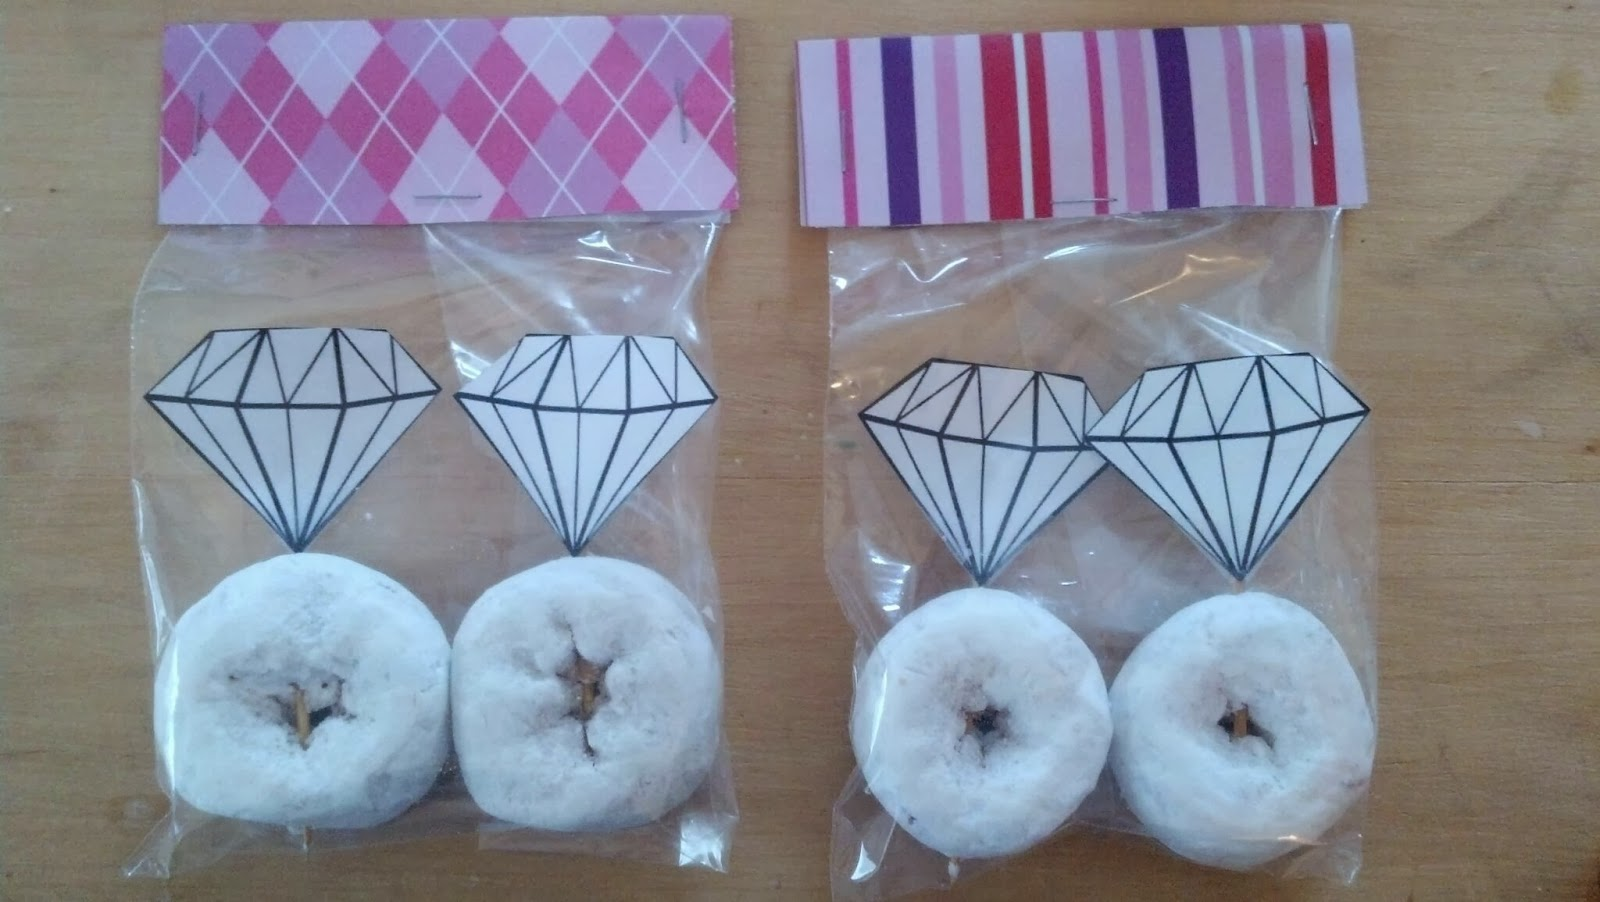 Cupcakes By Clever Engagement Ring Powdered Donuts